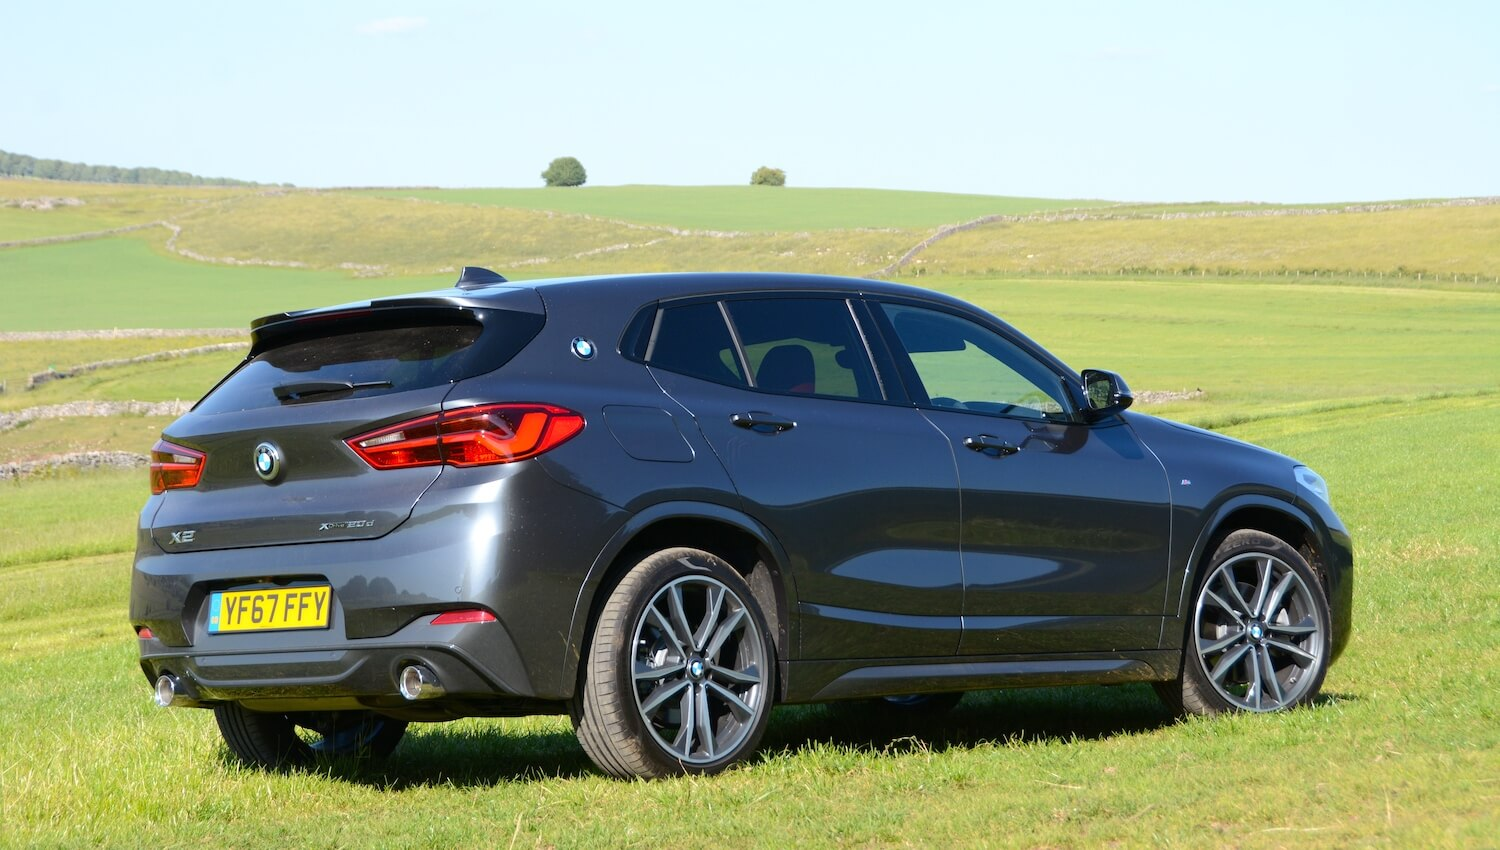 Bmw X2 Xdrive20d M Sport Review Greencarguide Co Uk